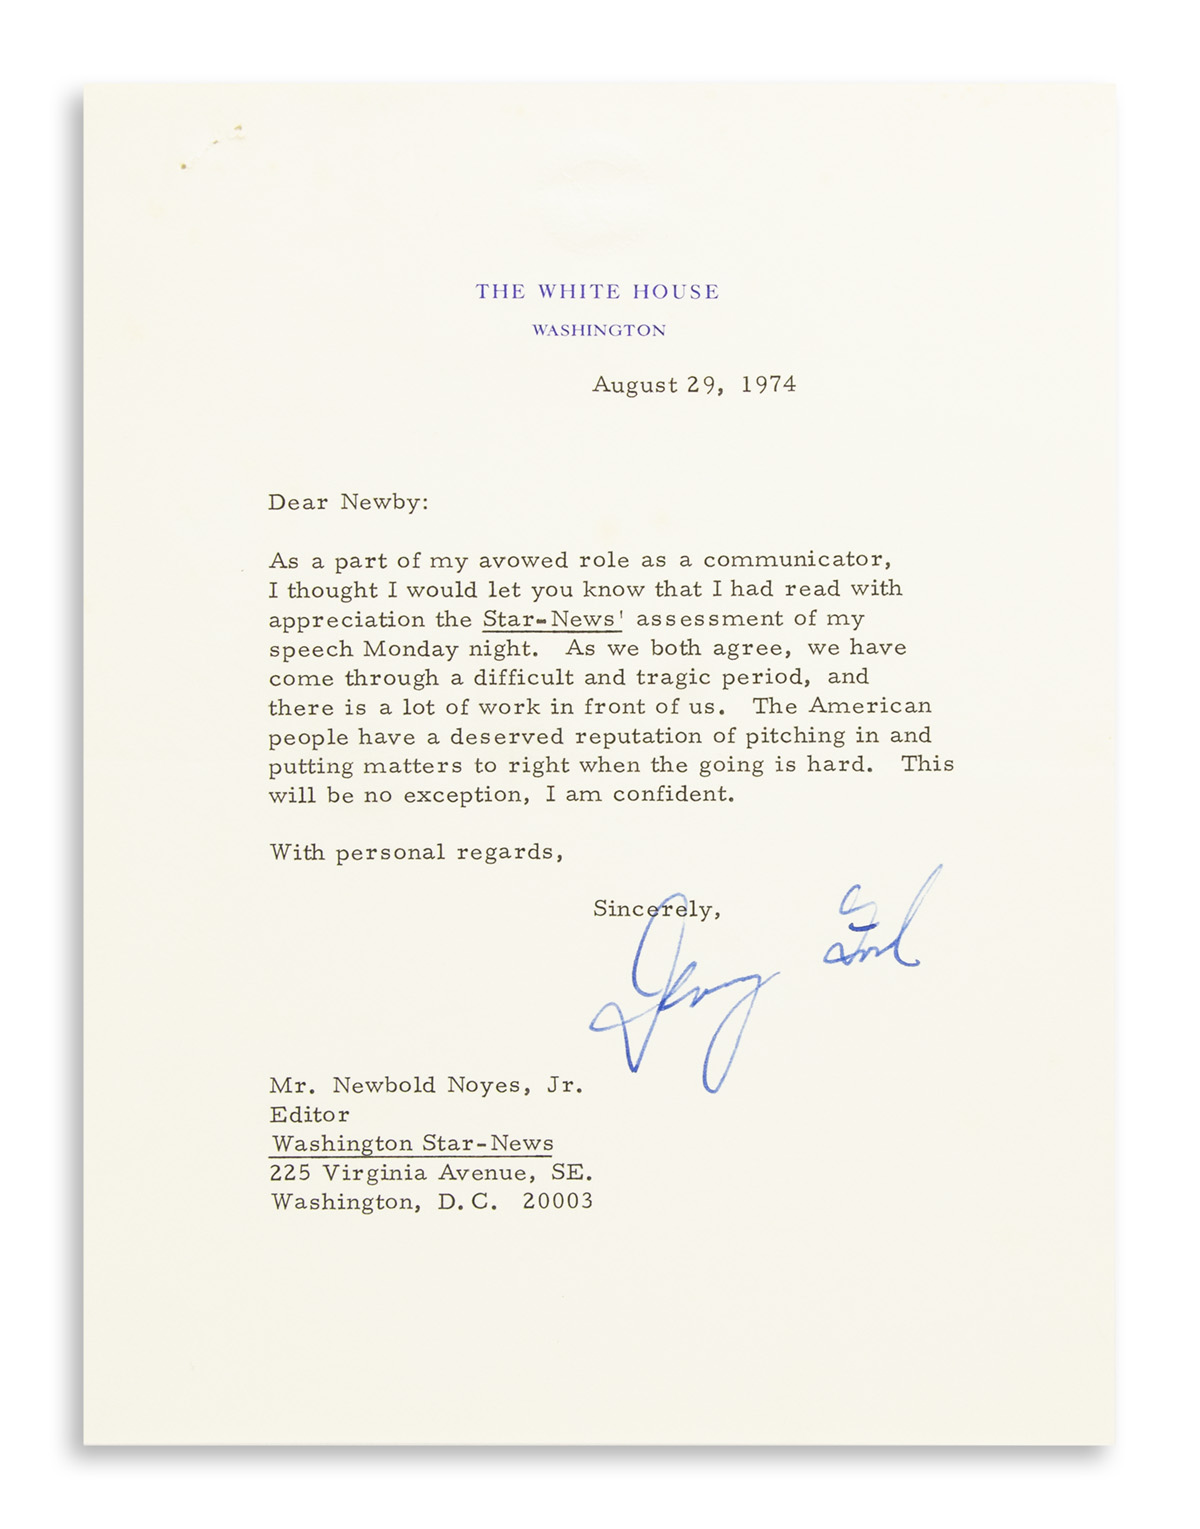 FORD, GERALD. Typed Letter Signed, as President, to Washington Star-News editor Newbold Noyes Jr.,